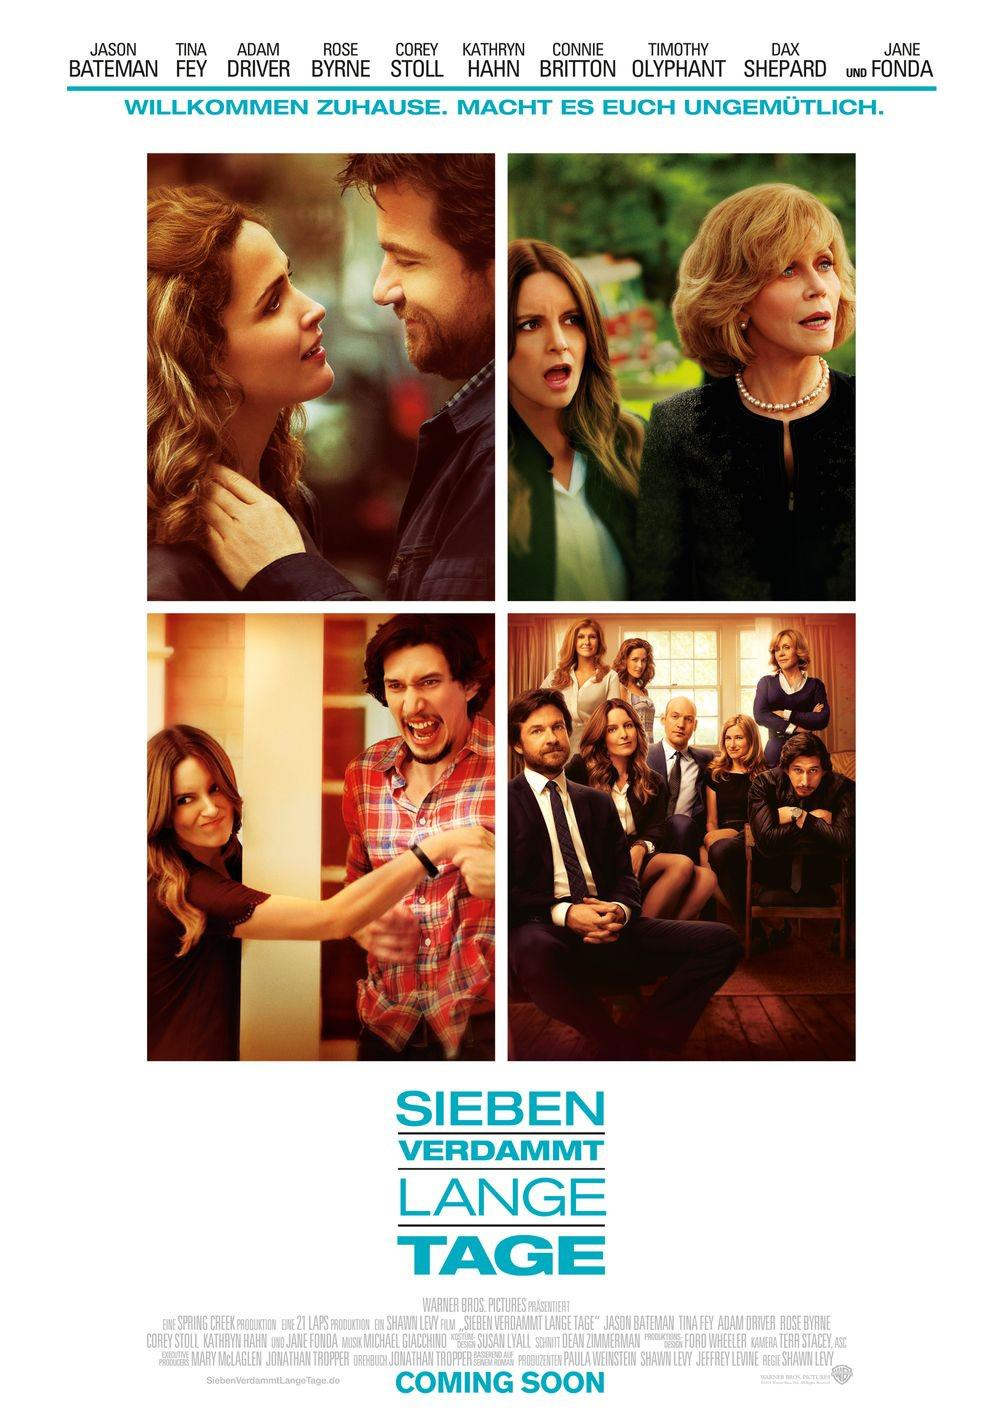 This is where I leave you - Welcome Home - Get Uncomfortable - Jason Bateman - Tina Fey - Adam Driver - Rose Byrne - Corey Stoll - Kathryn Hahn - Connie Britton - Timothy Olyphant - Dax Shepard - Jane Fonda